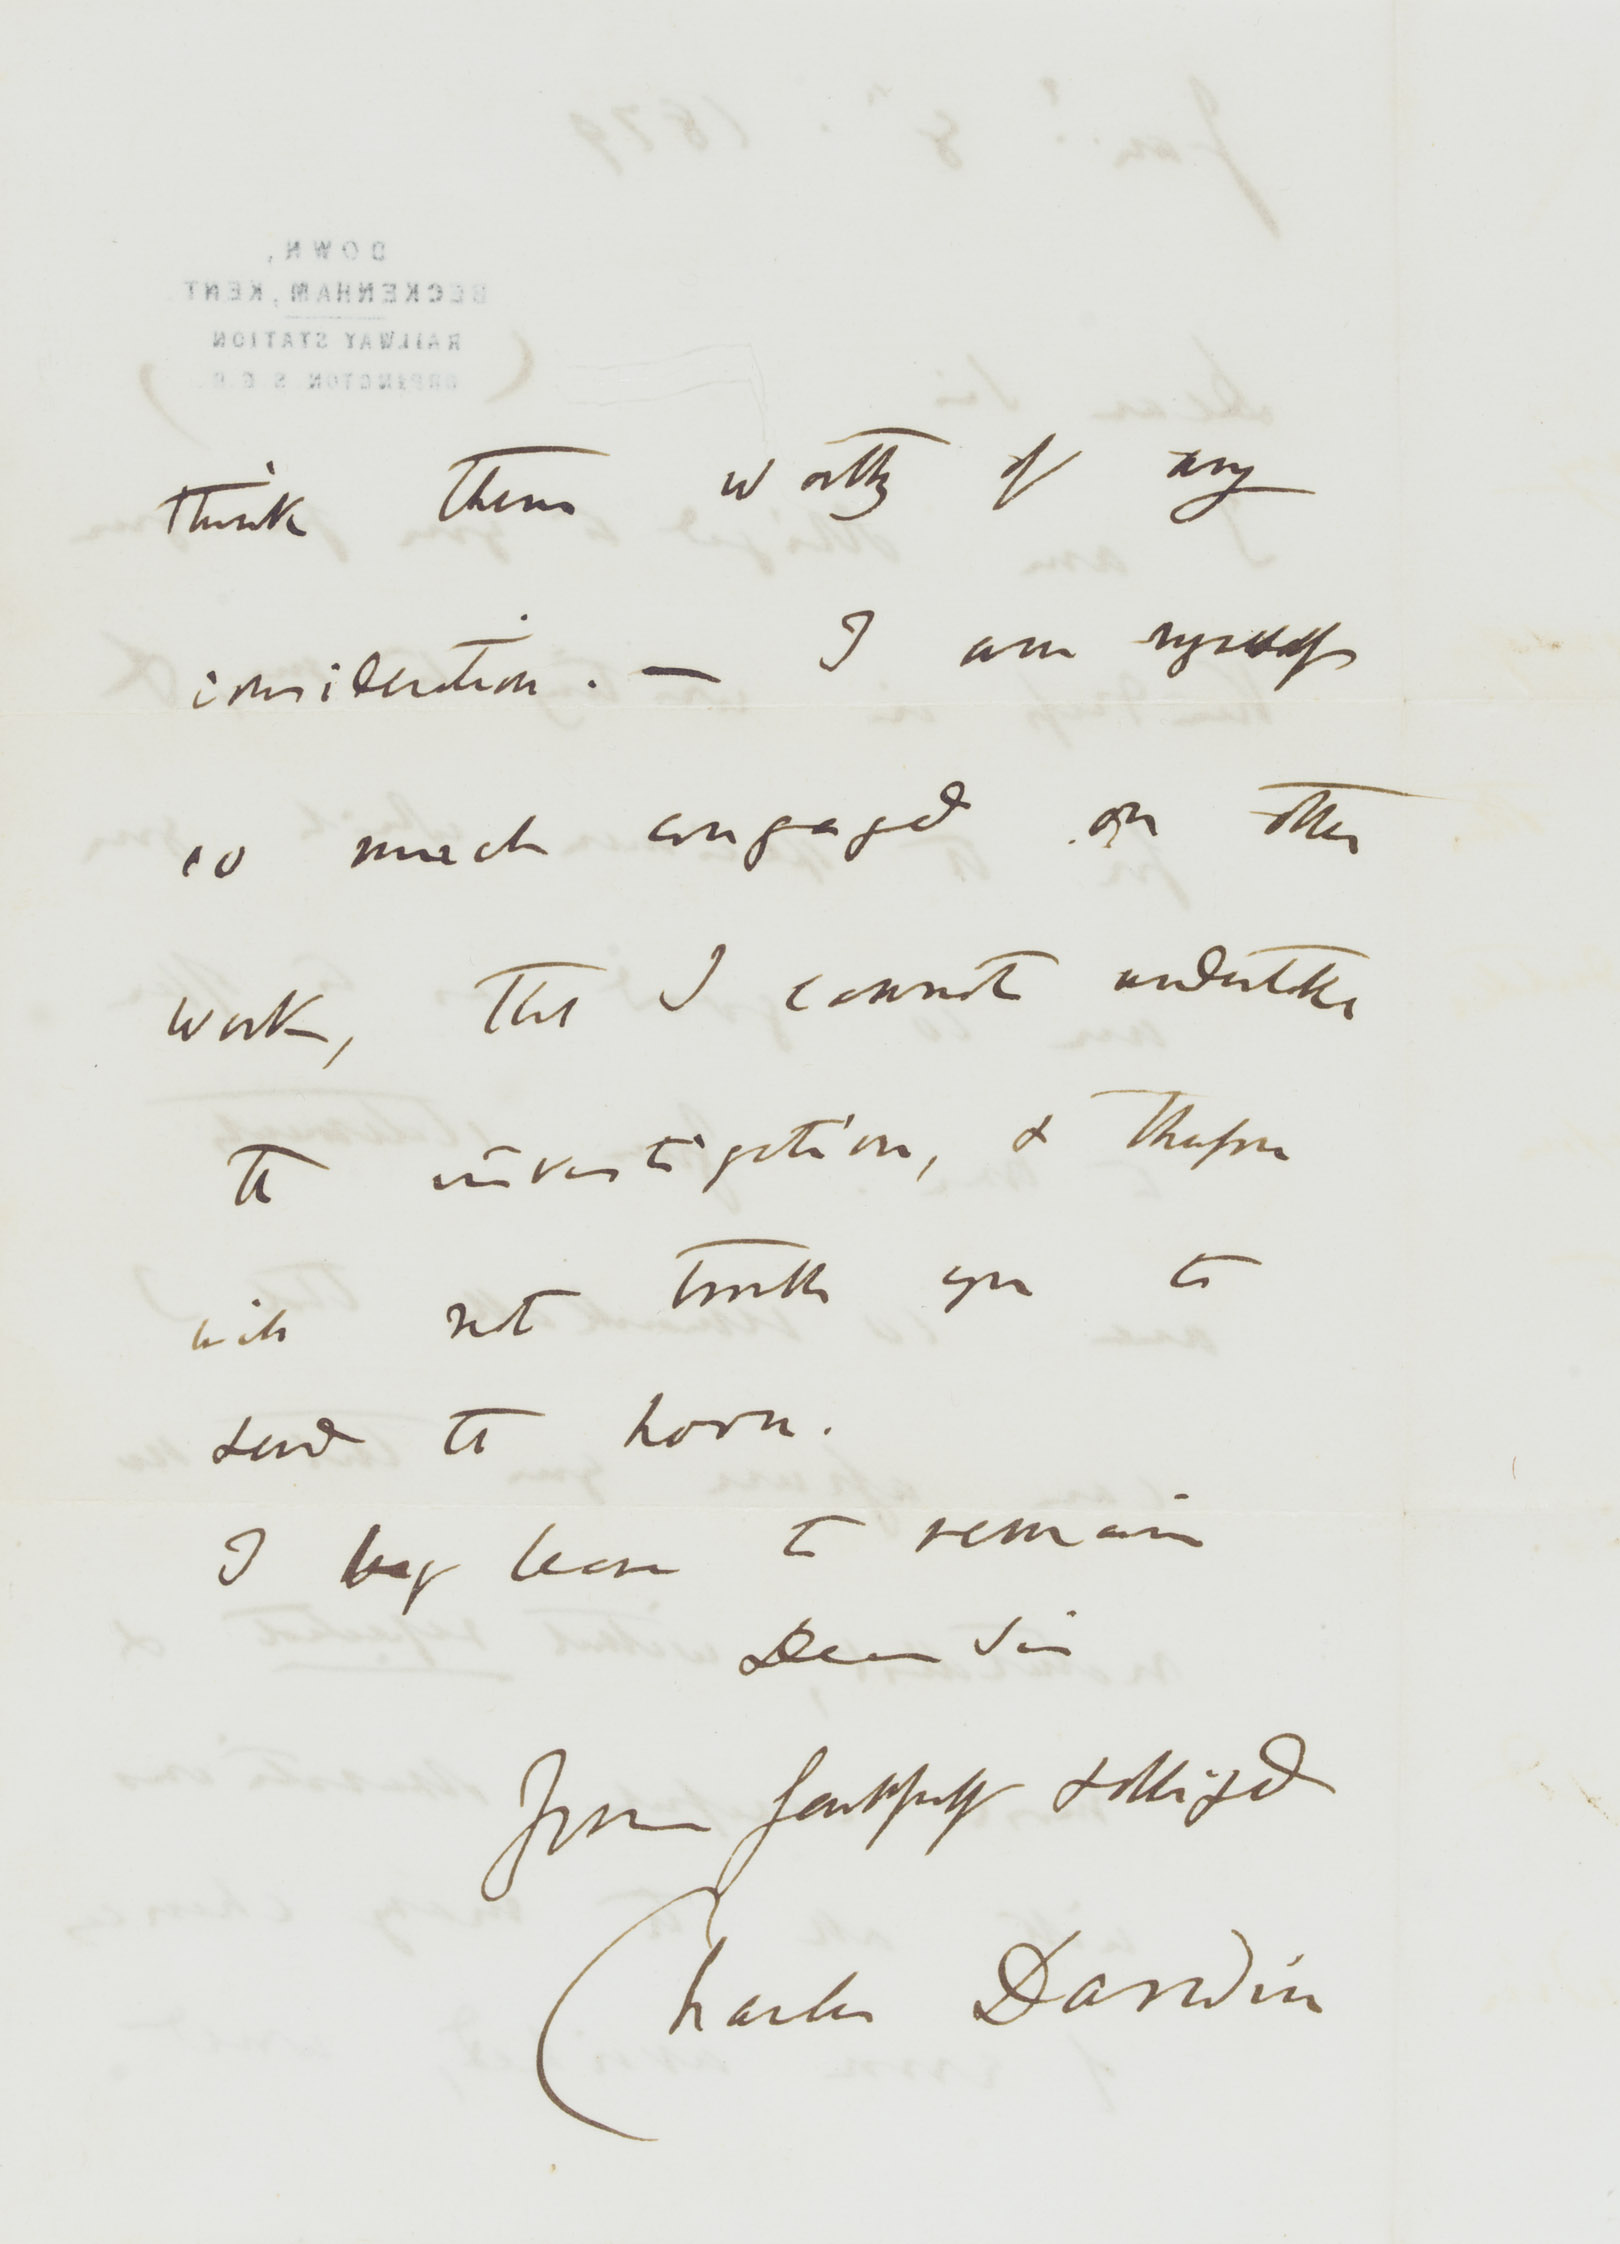 DARWIN, Charles (1809-1882). Autograph letter signed ('Charles Darwin') to Baron Antonio Mendola (in Favara, Sicily), Down, 8 January 1879, thanking him for a specimen, and going on 'Your statements are so remarkable that I can assure you that no naturalist, without repeated & most careful observations with all the many chances of error avoided, would think them worthy of any consideration'; Darwin is too busy to undertake the investigation himself, 'and therefore will not trouble you to send the horn', two pages, 8vo, on a bifolium; envelope. Provenance: by descent from the recipient.